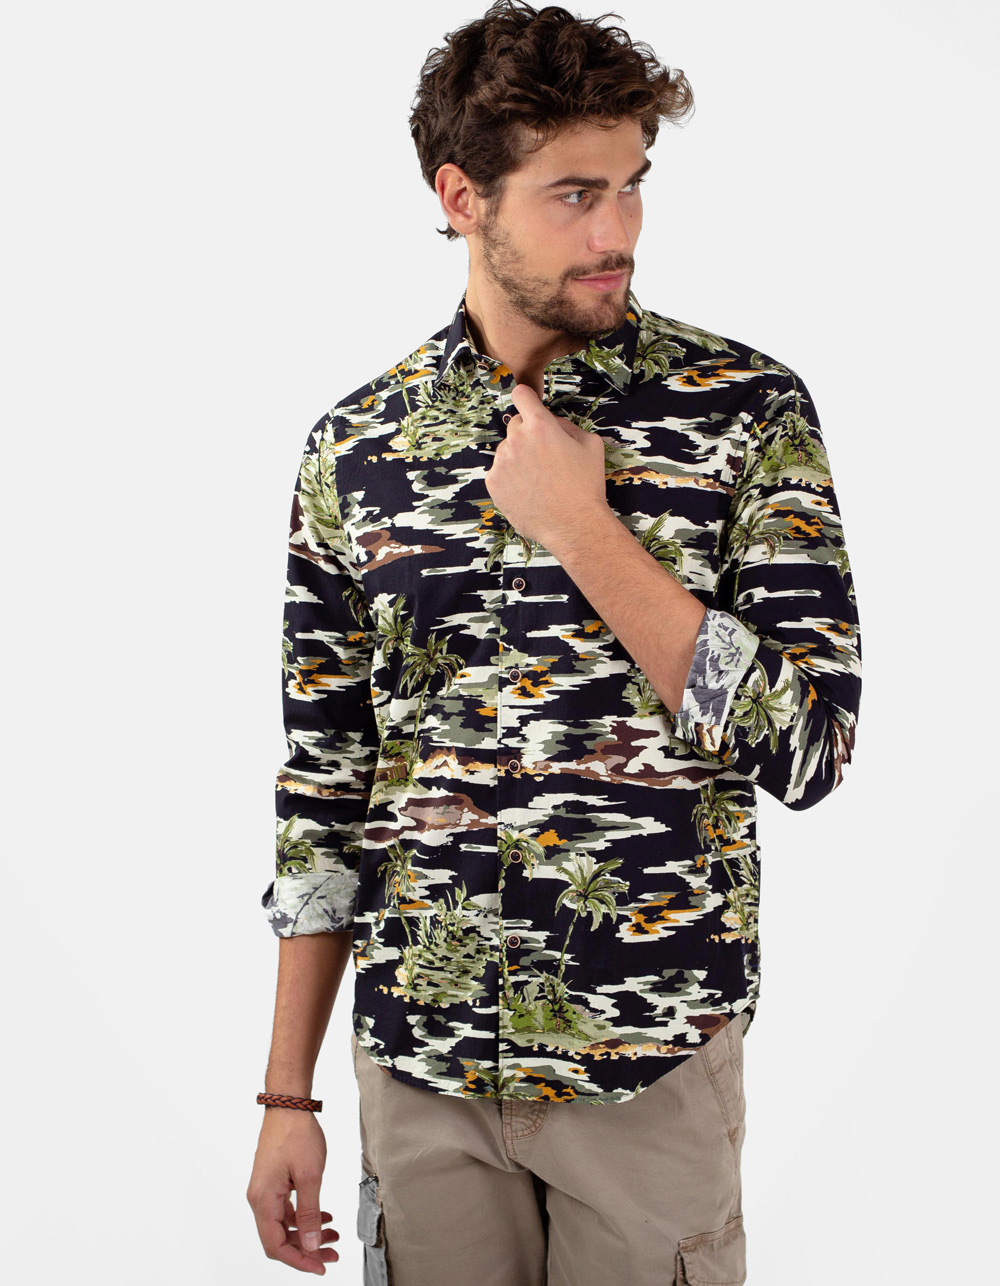 Black shirt, varius colors palm trees print